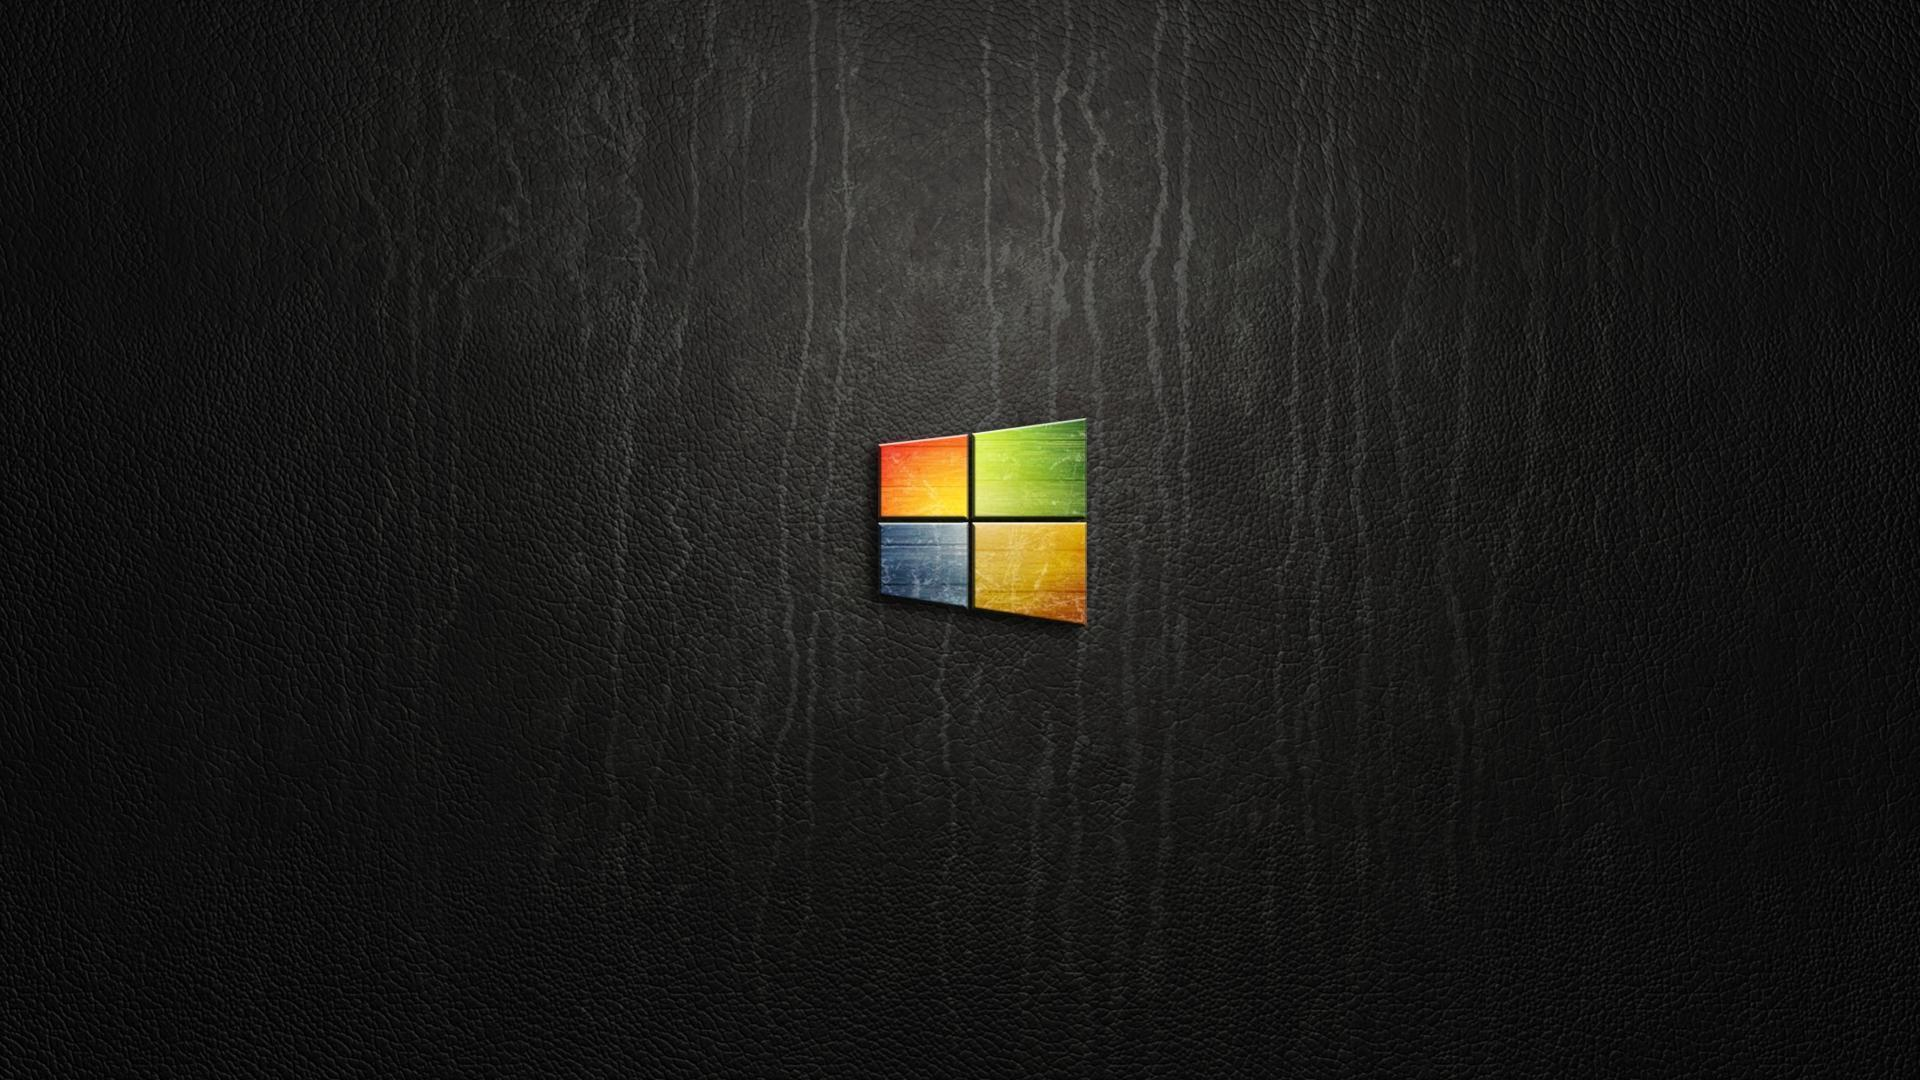 Grunge Windows Logo Grunge Windows Logo Wallpapers